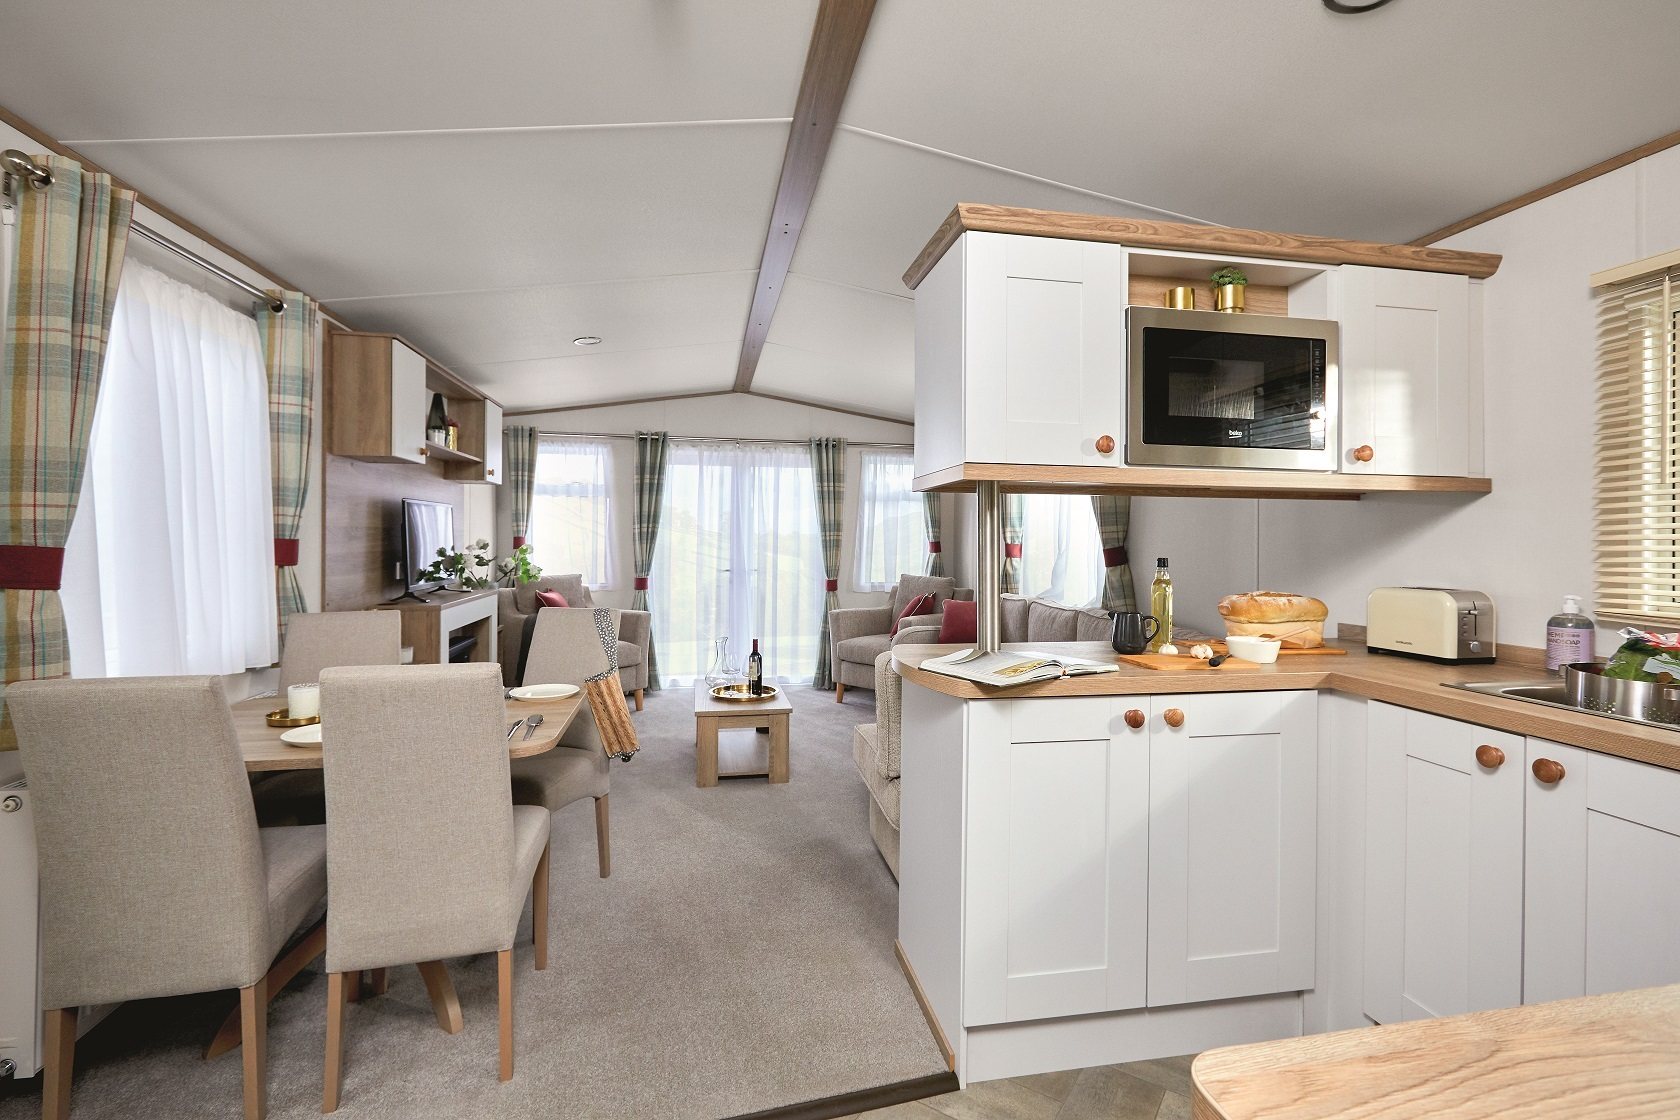 ABI Wimbledon: Static Caravans and Holiday Homes for Sale on Caravan Parks, Frosterley, Durham and Weardale Large Image 1